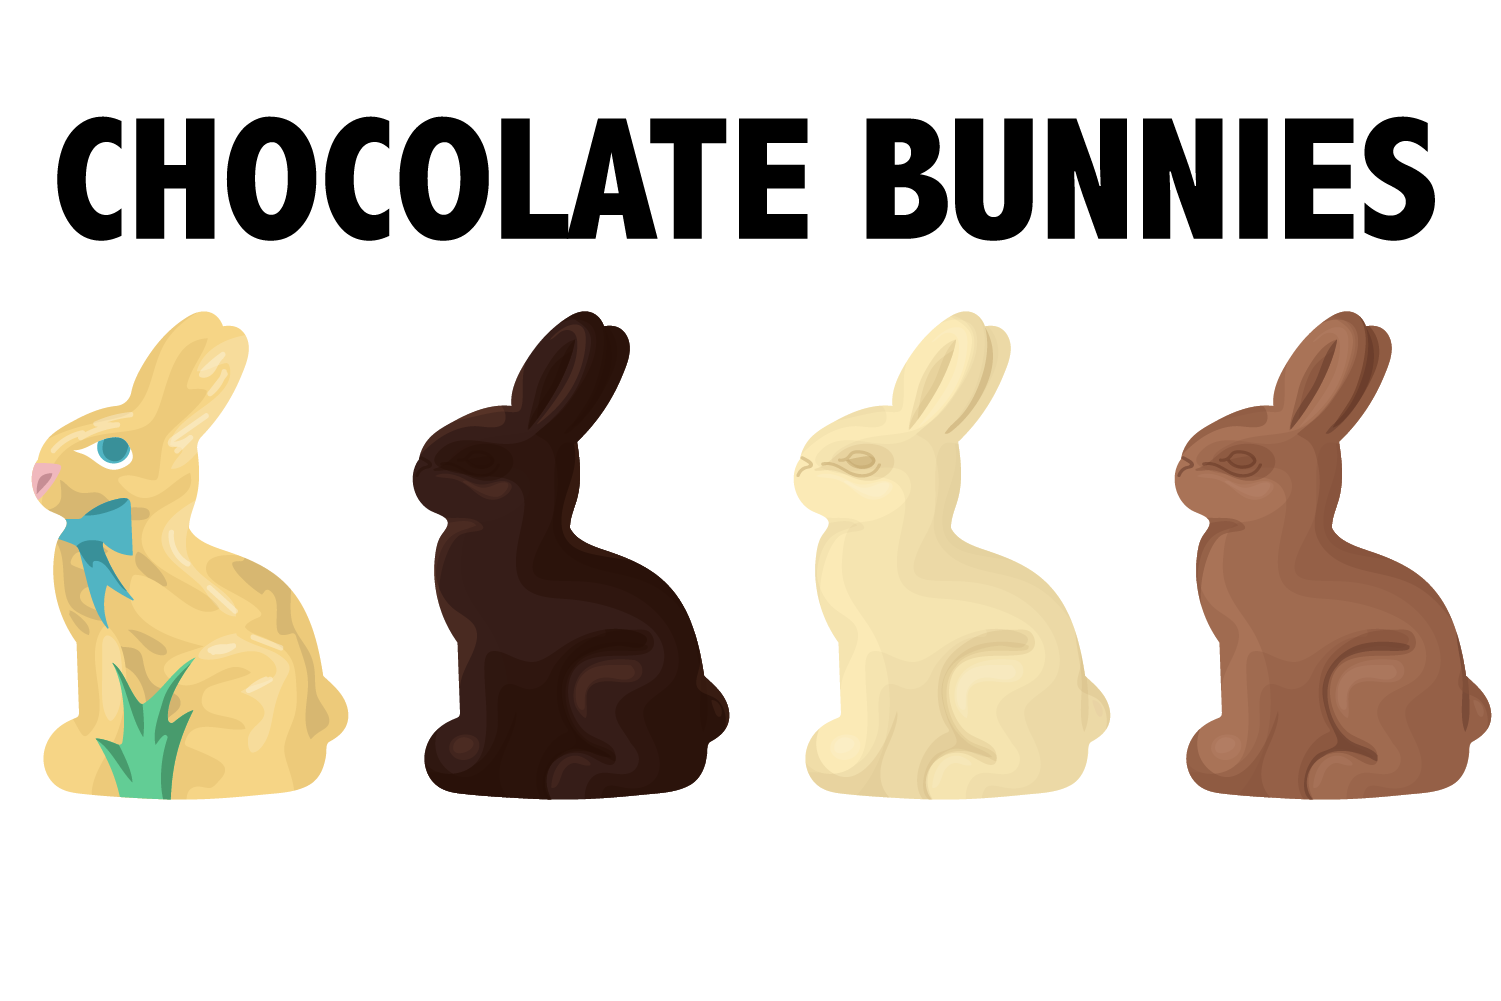 Download Free Chocolate Bunnies Graphic By Mine Eyes Design Creative Fabrica for Cricut Explore, Silhouette and other cutting machines.